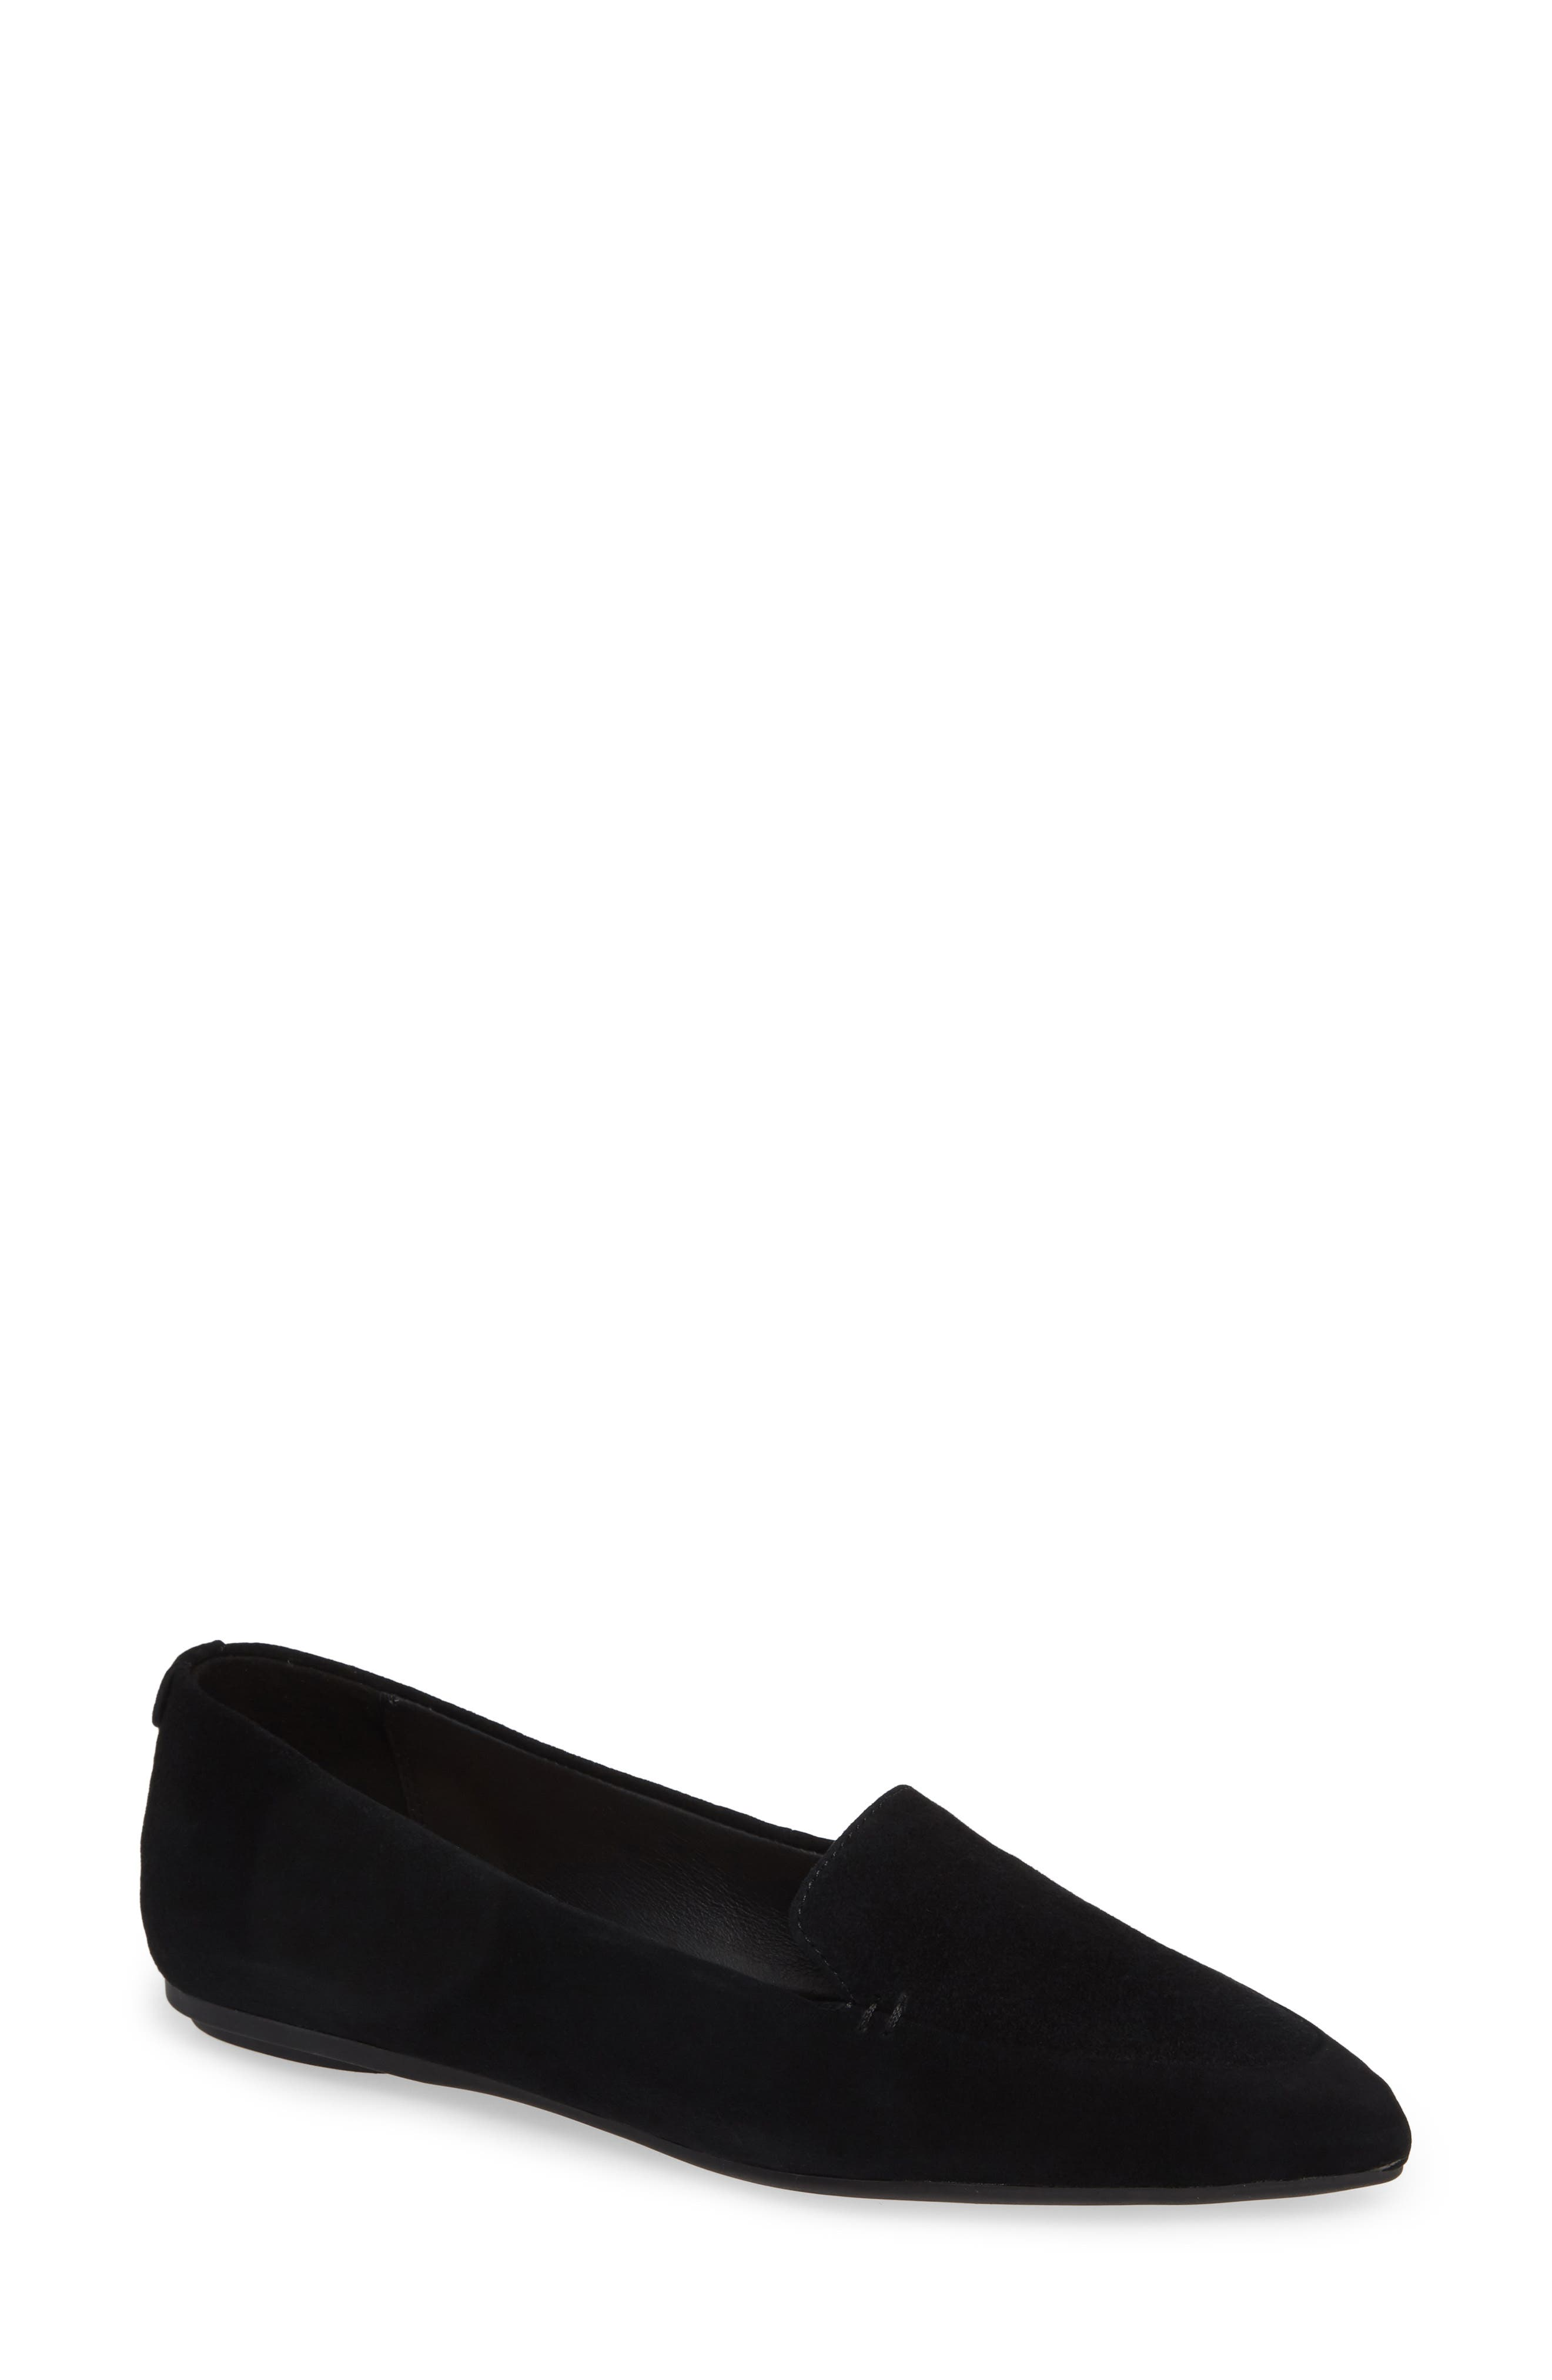 TARYN ROSE, Faye Pointy Toe Loafer, Main thumbnail 1, color, BLACK/ BLACK SUEDE